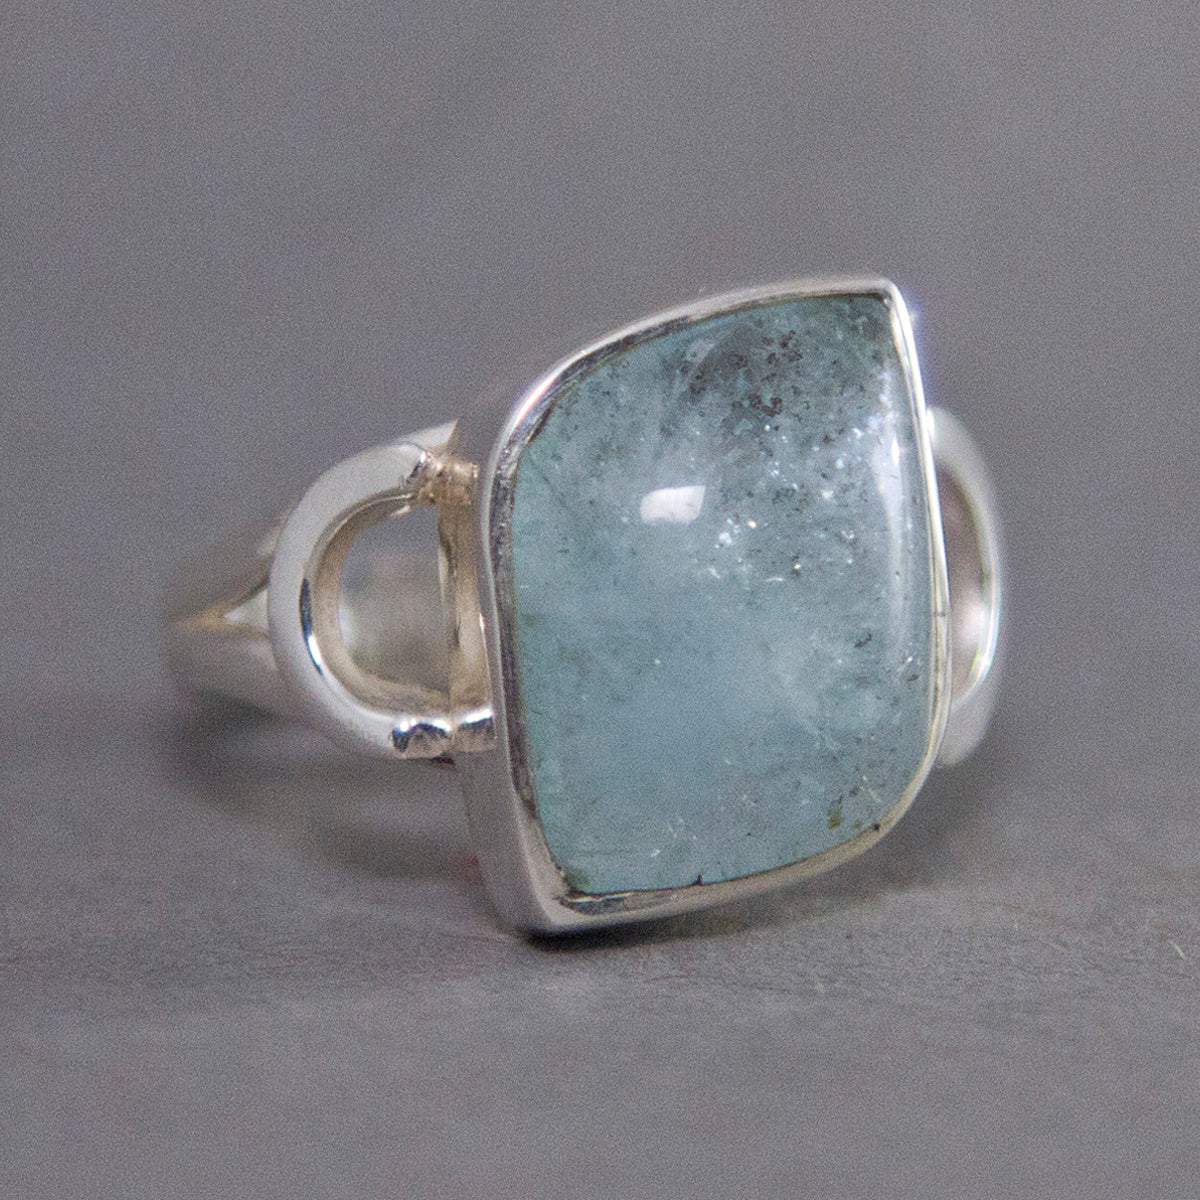 Aquamarine Fancy Modern Sterling Silver Ring US 8.5 SS-033